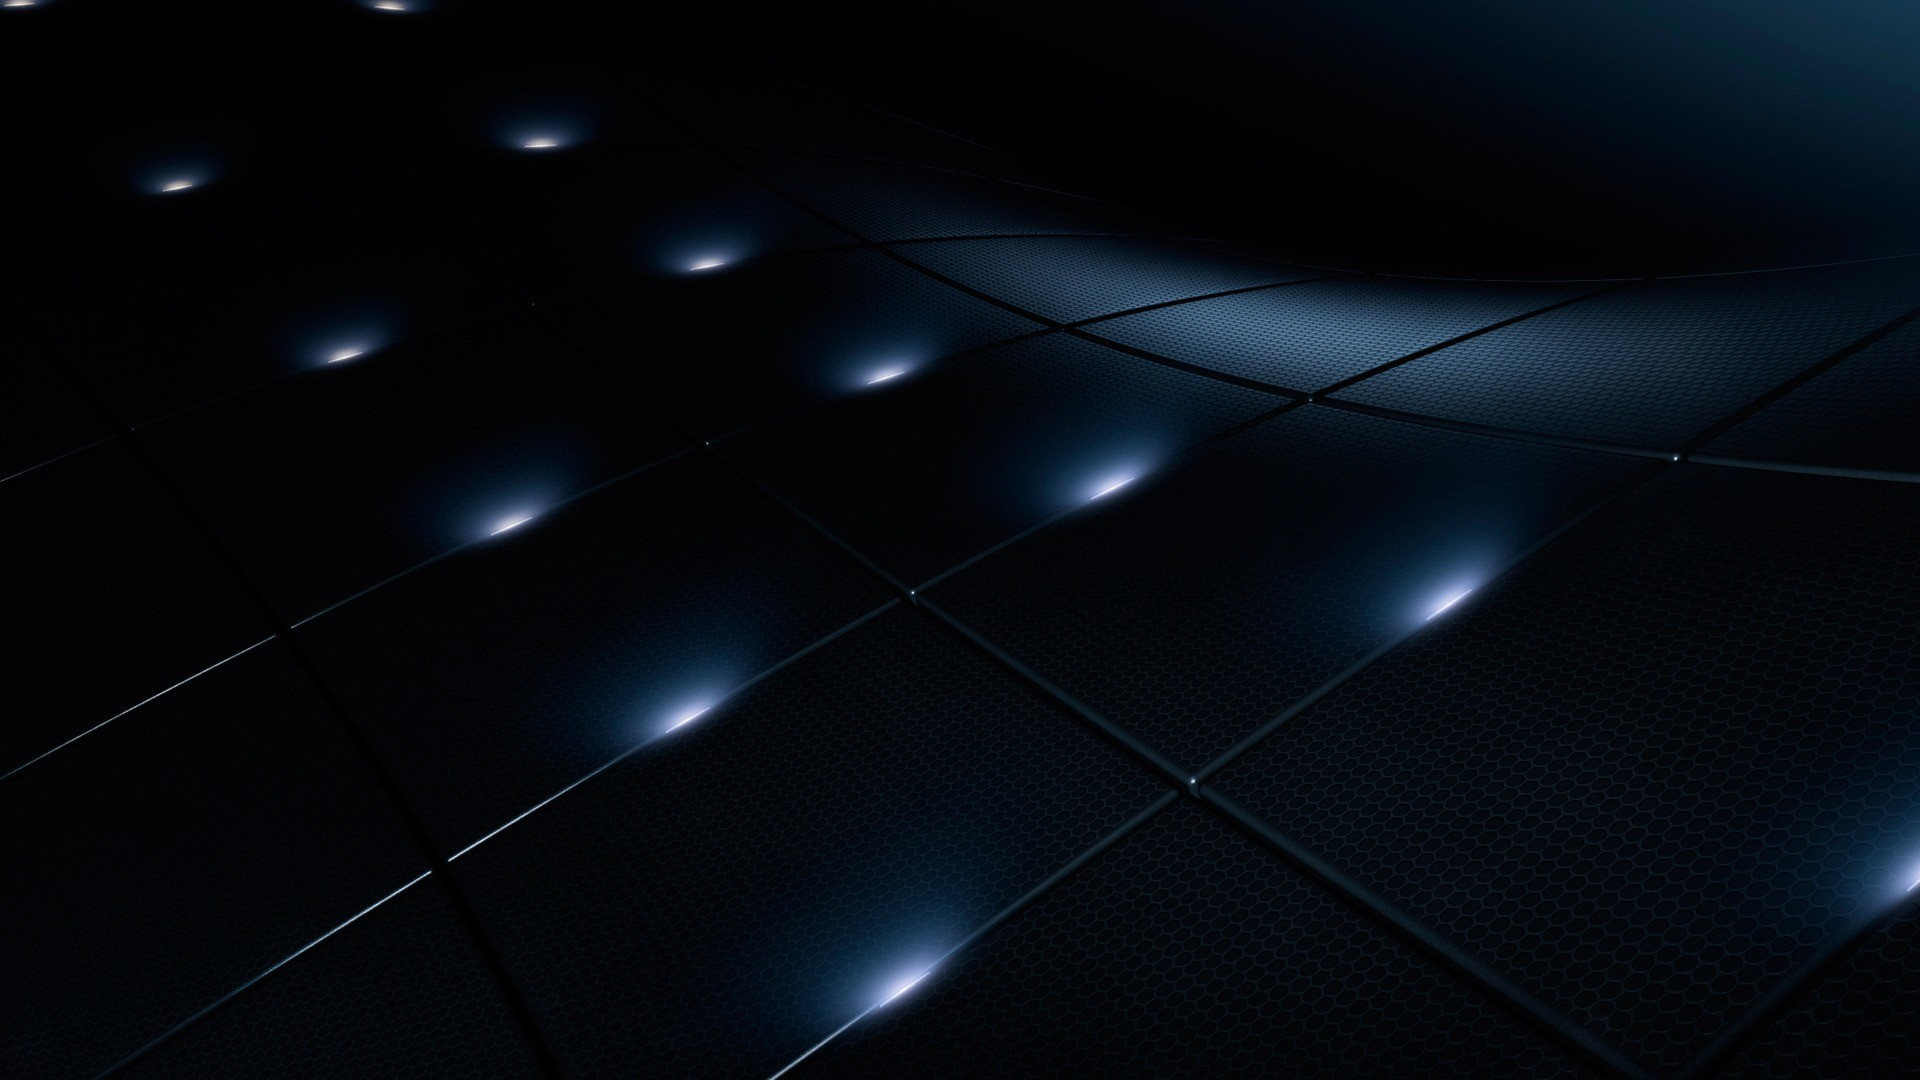 Abstract Wallpaper: Windows Carbon Fiber Desktop Background .